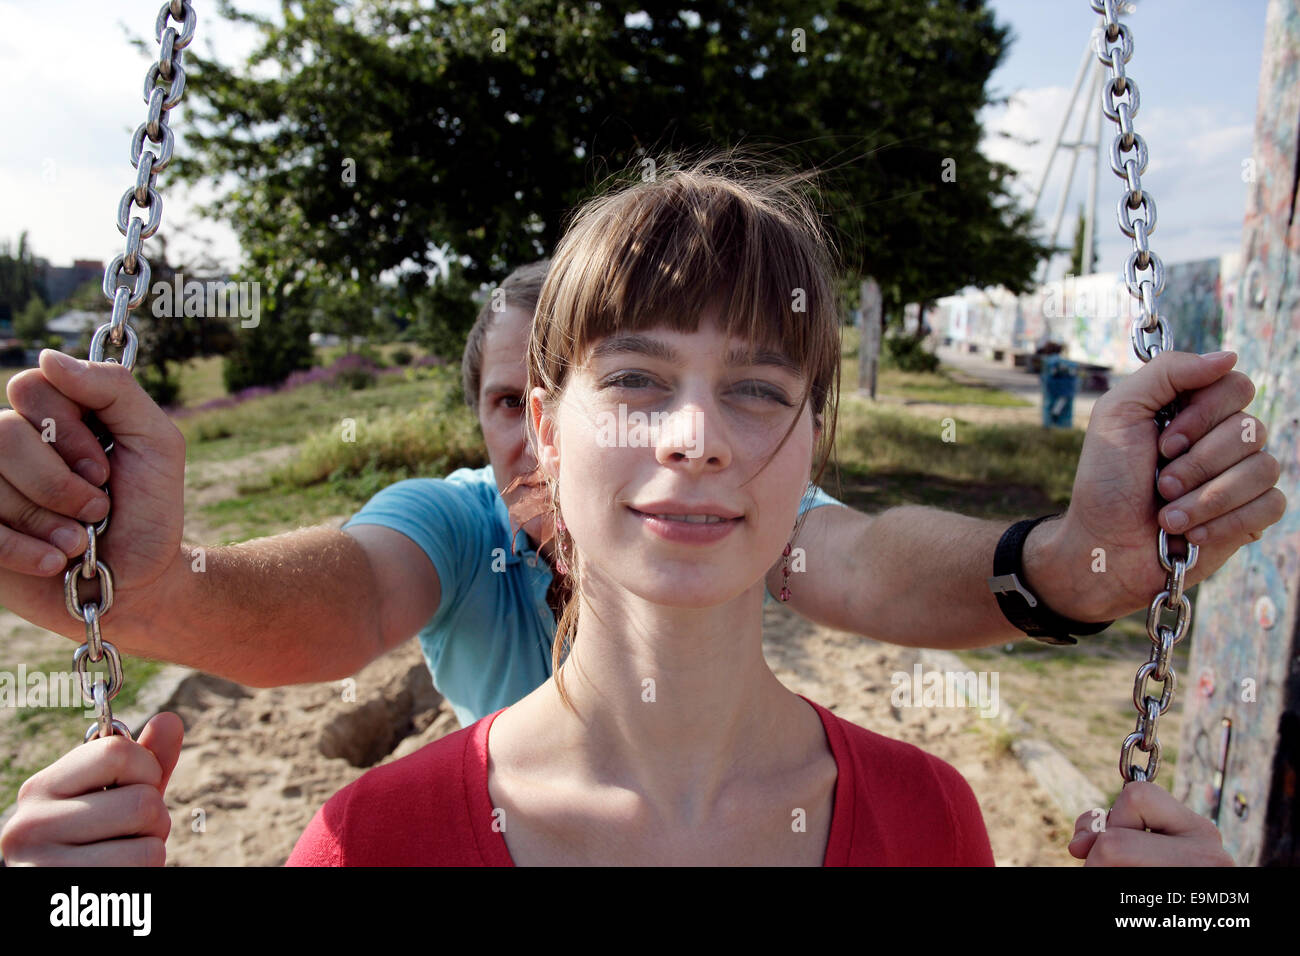 Man pushing woman on swing aire Photo Stock